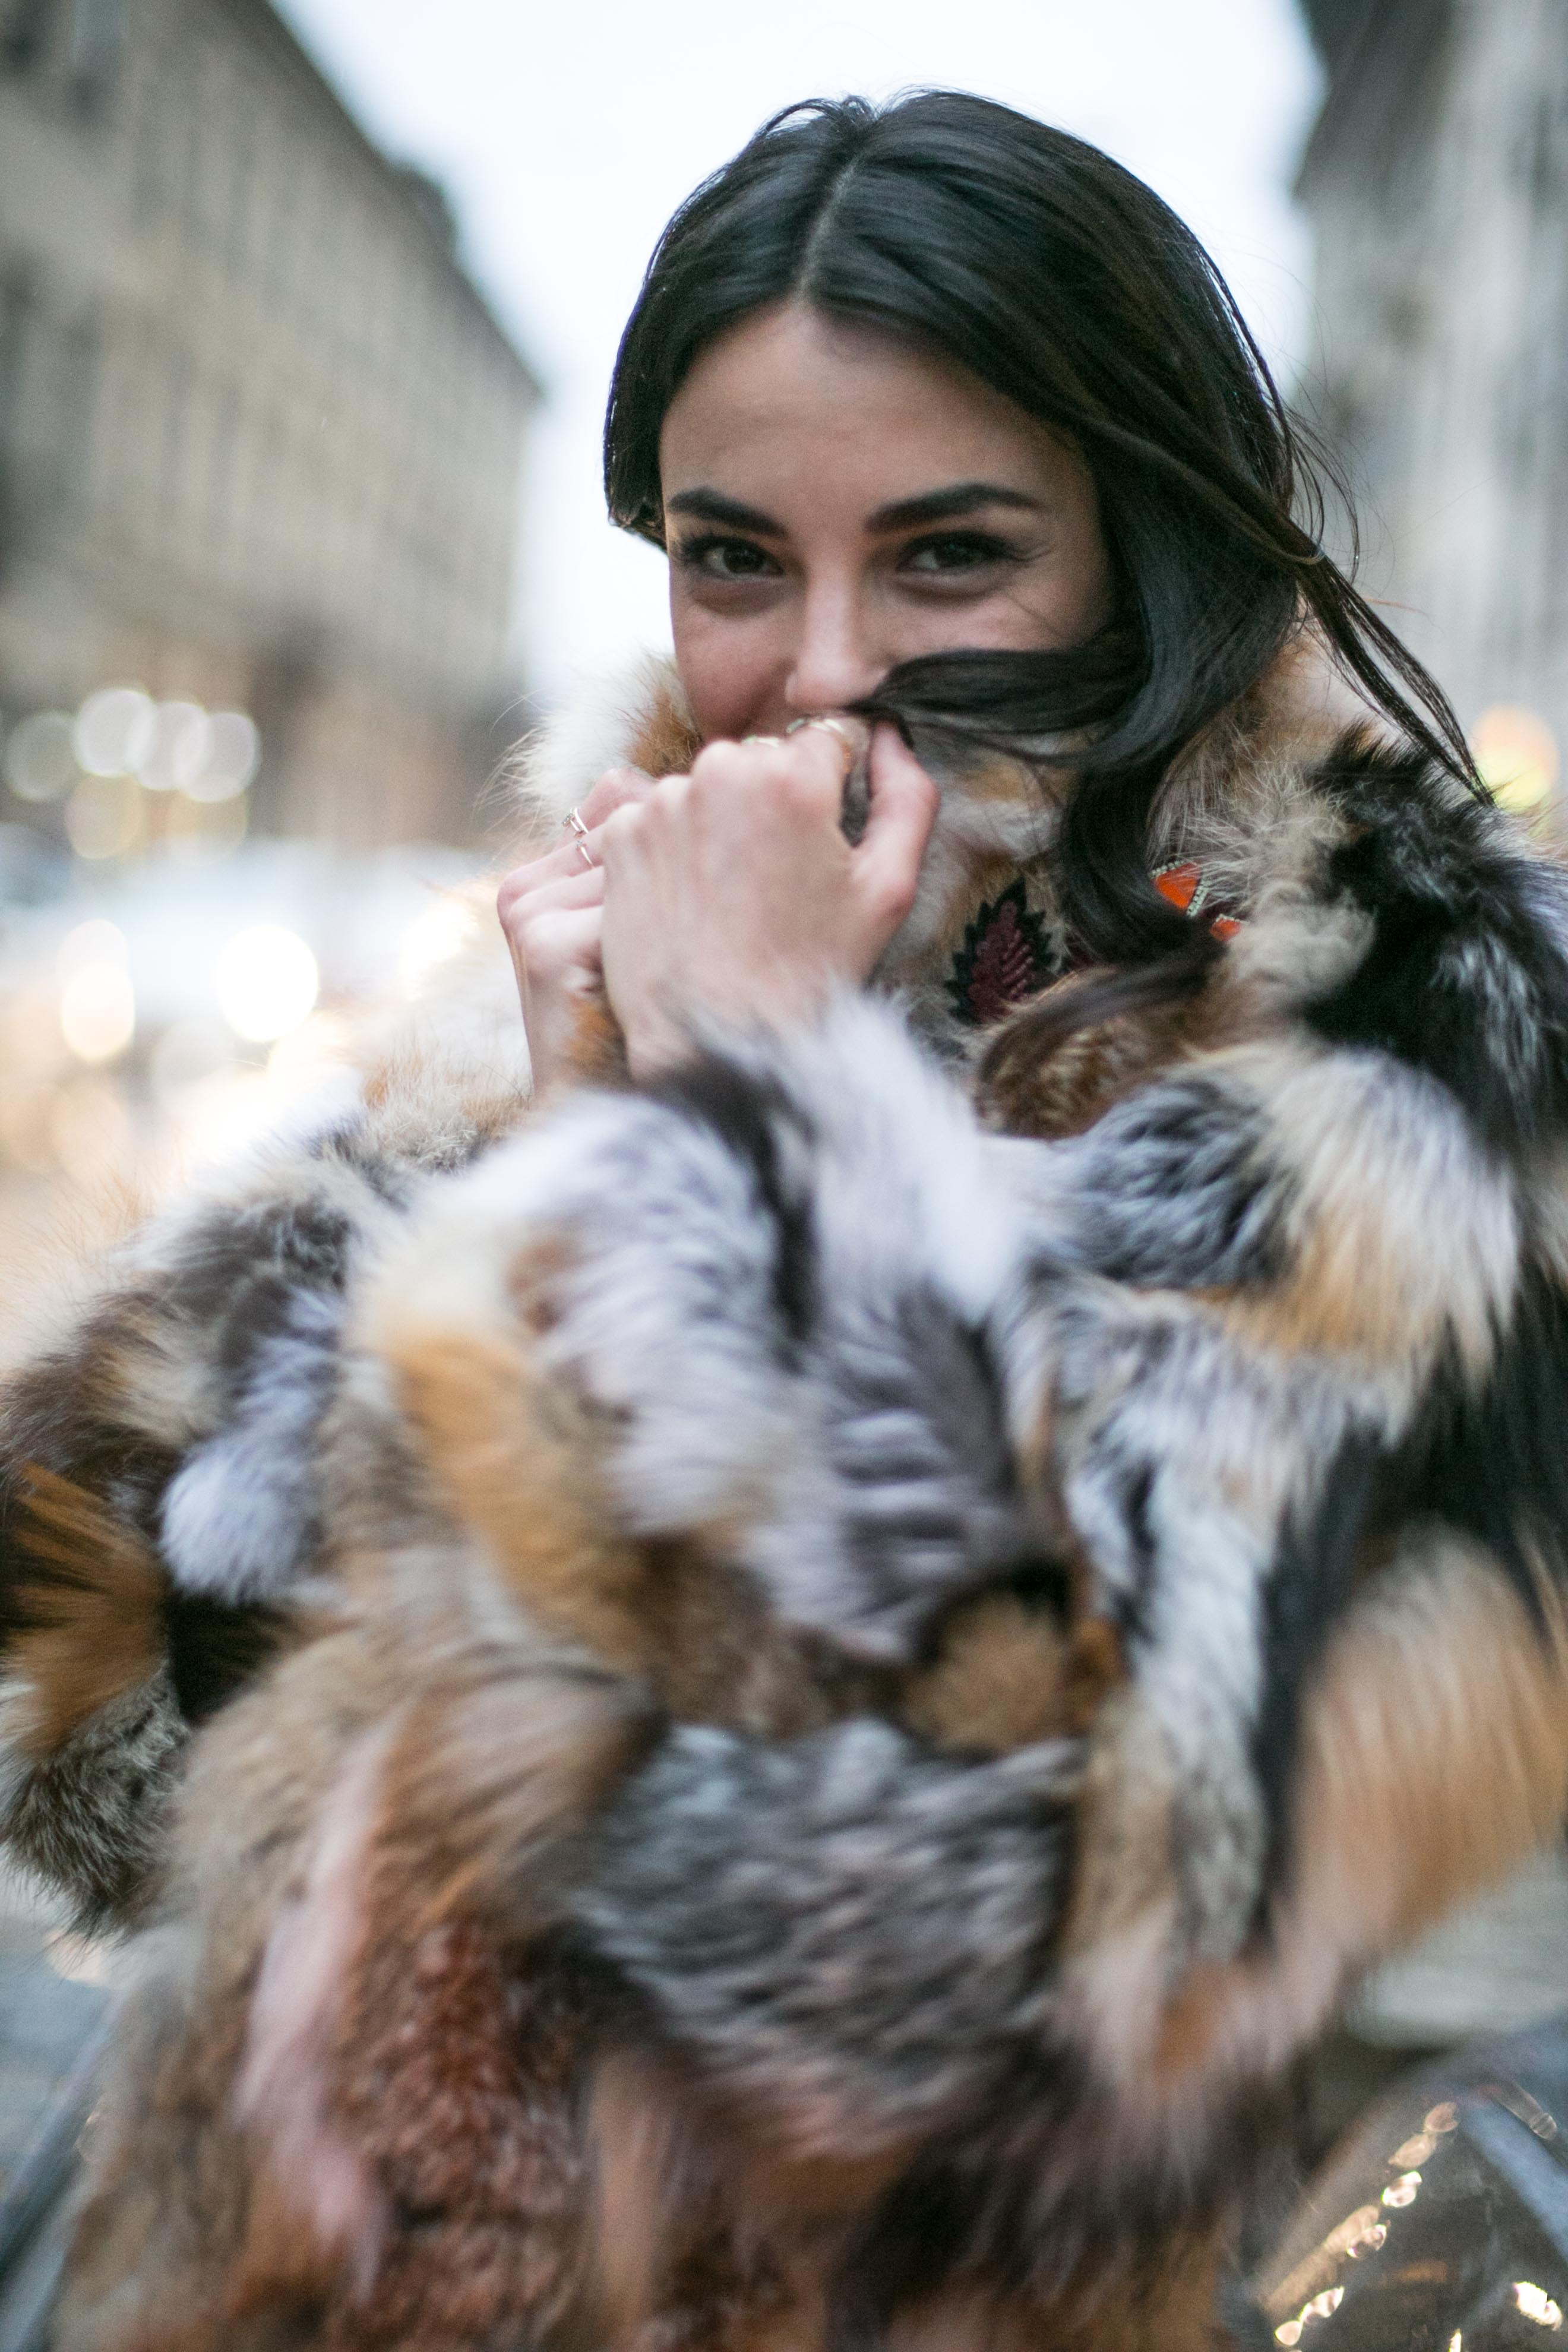 close up shot of woman with black hair, wearing faux fur jacket